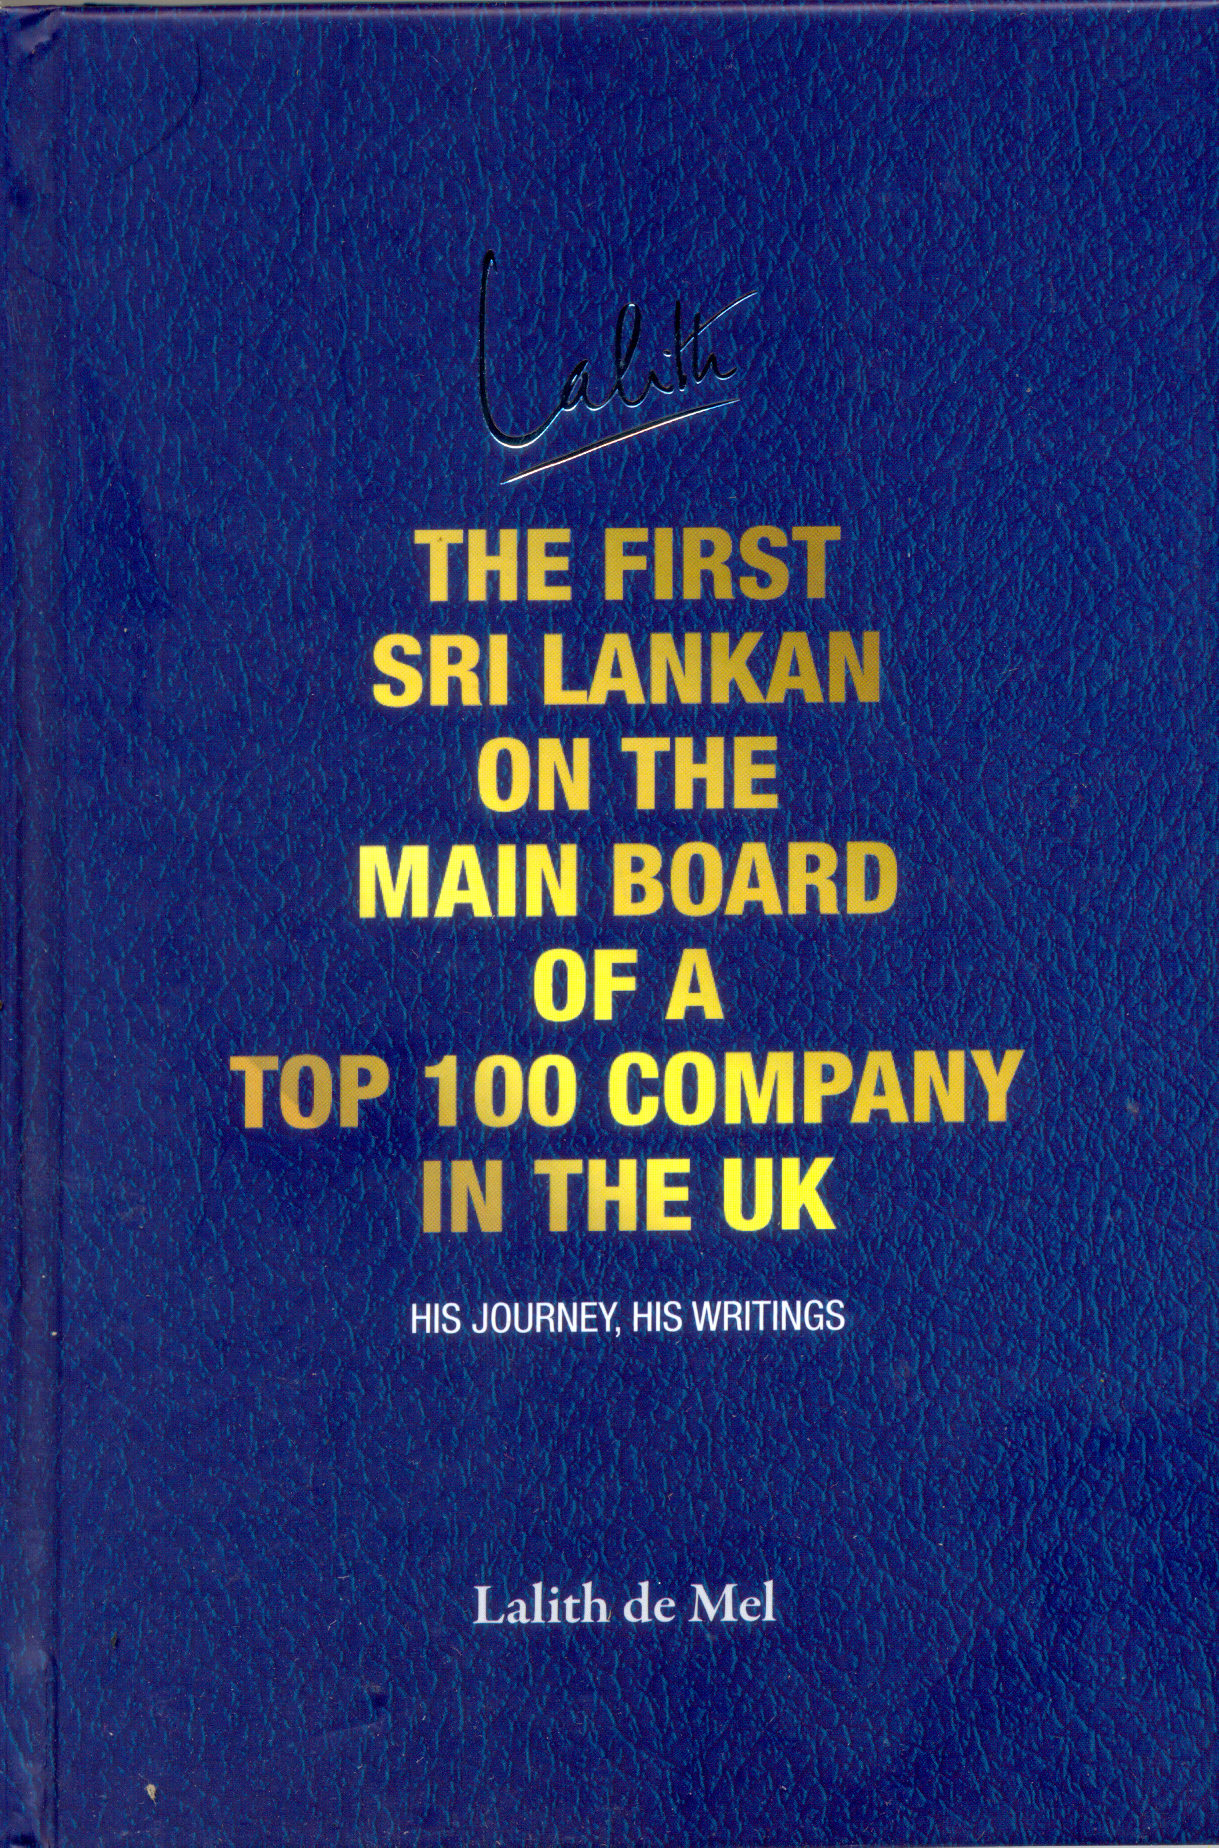 First Sri Lankan On The Main Board Of ATop 100 Company In The Uk : His Journey,His Writings